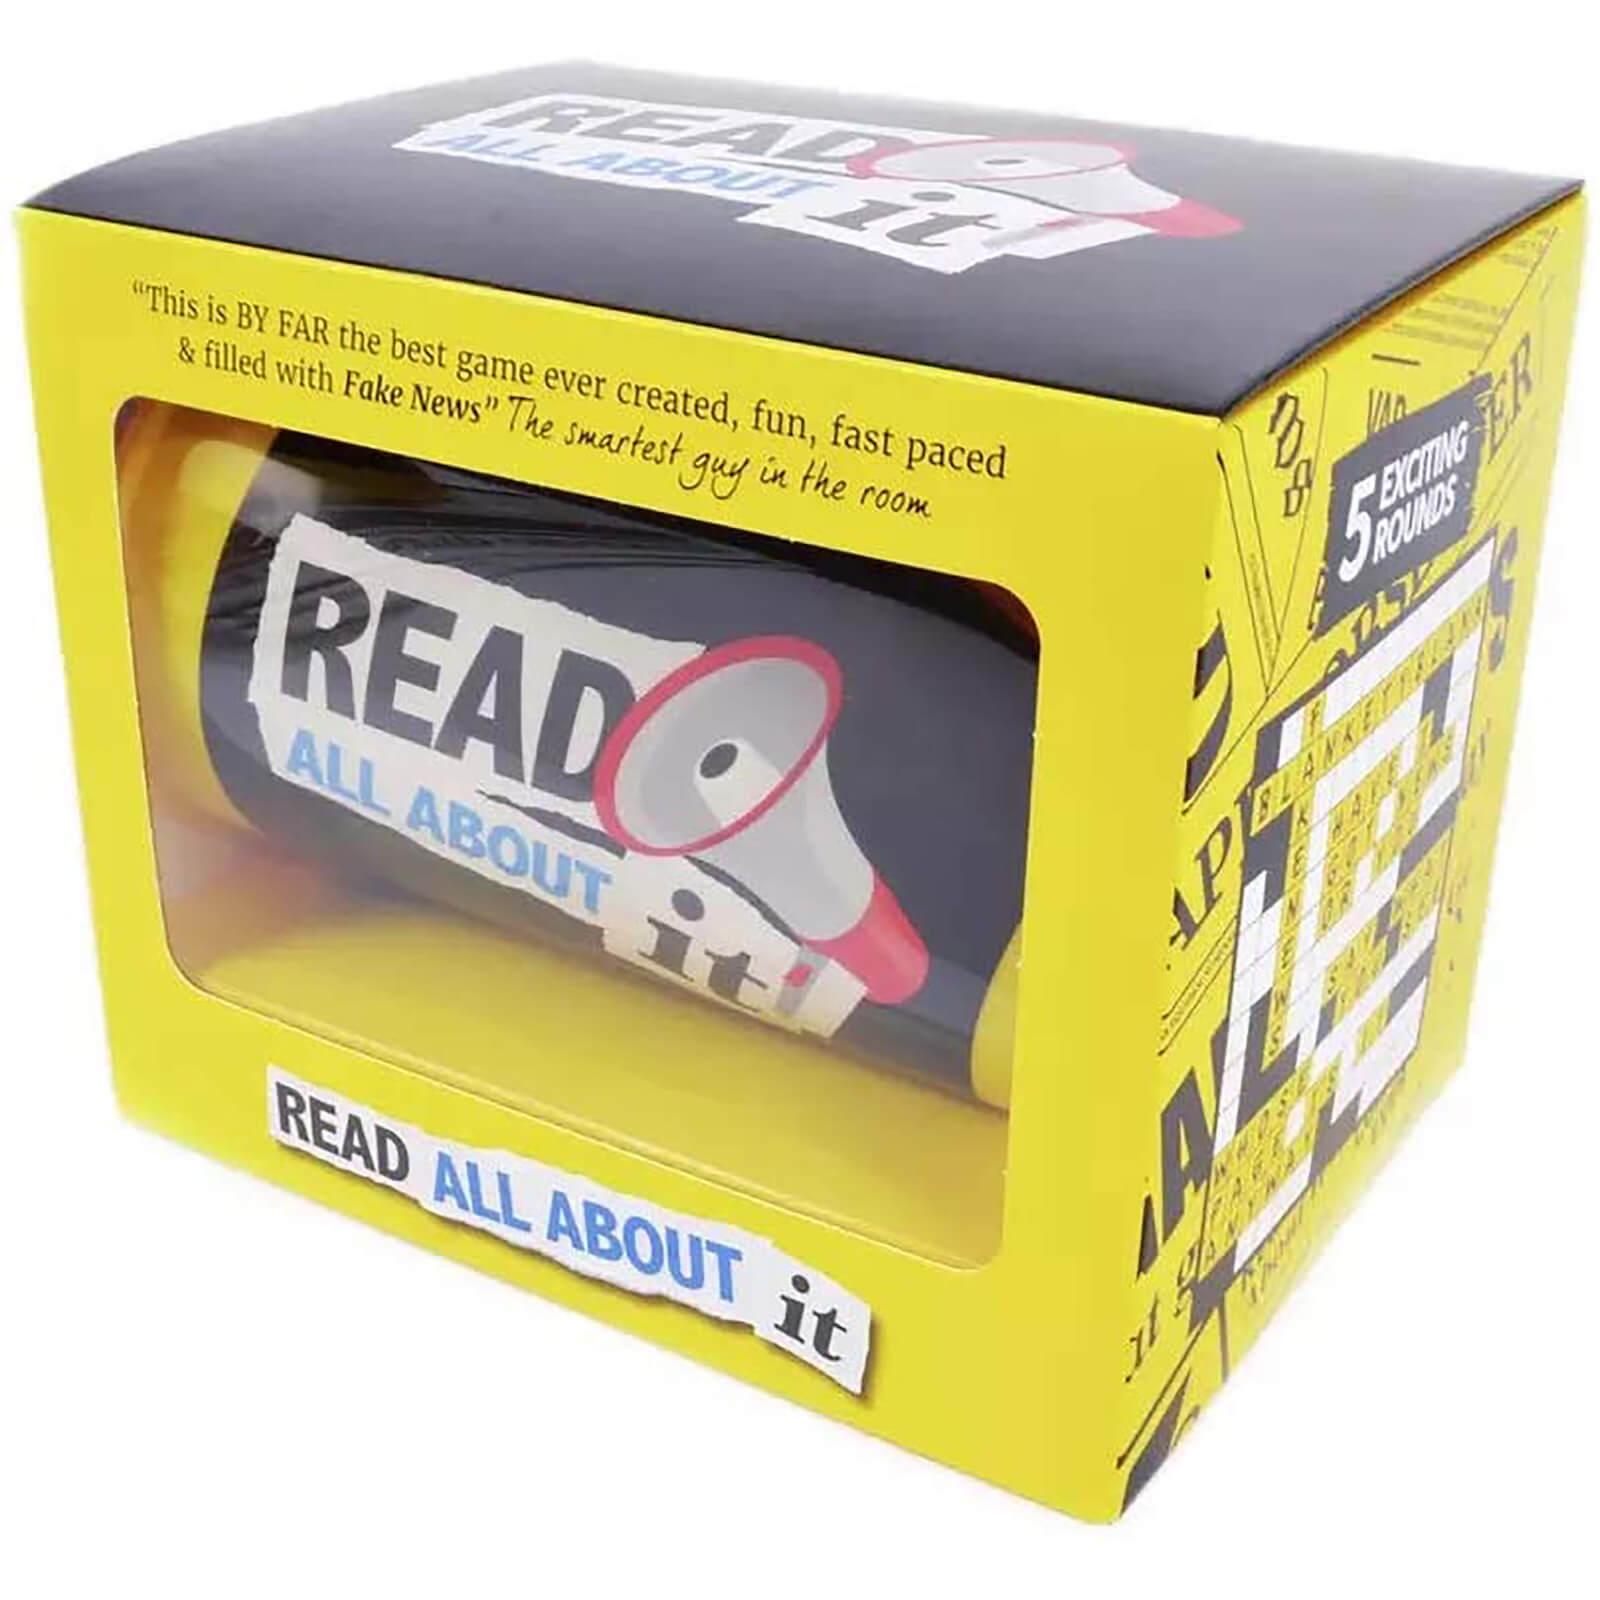 Image of Read All About It Game